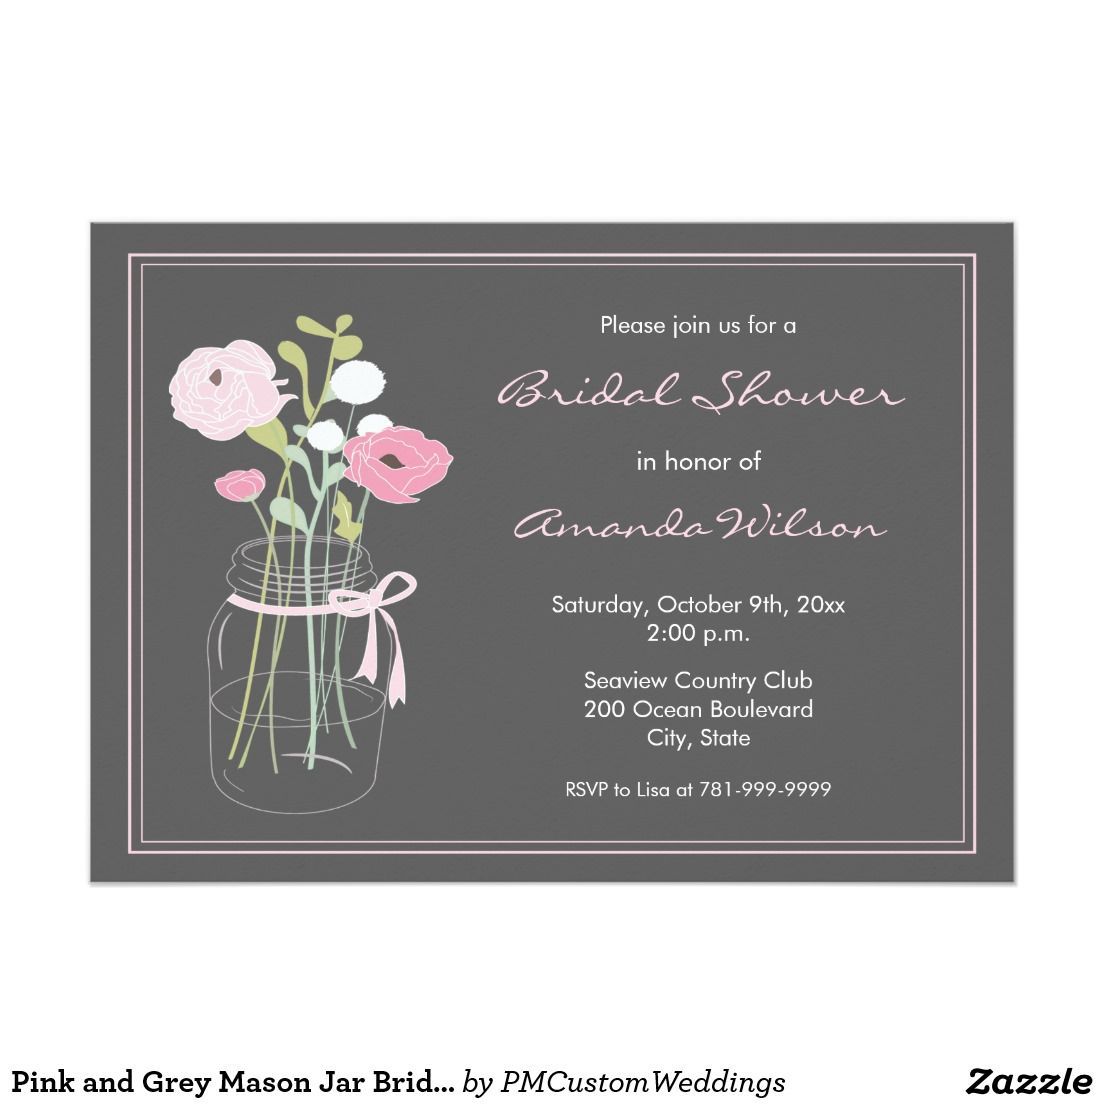 Pink and Grey Mason Jar Bridal Shower Invitation | Zazzle.co.uk ...